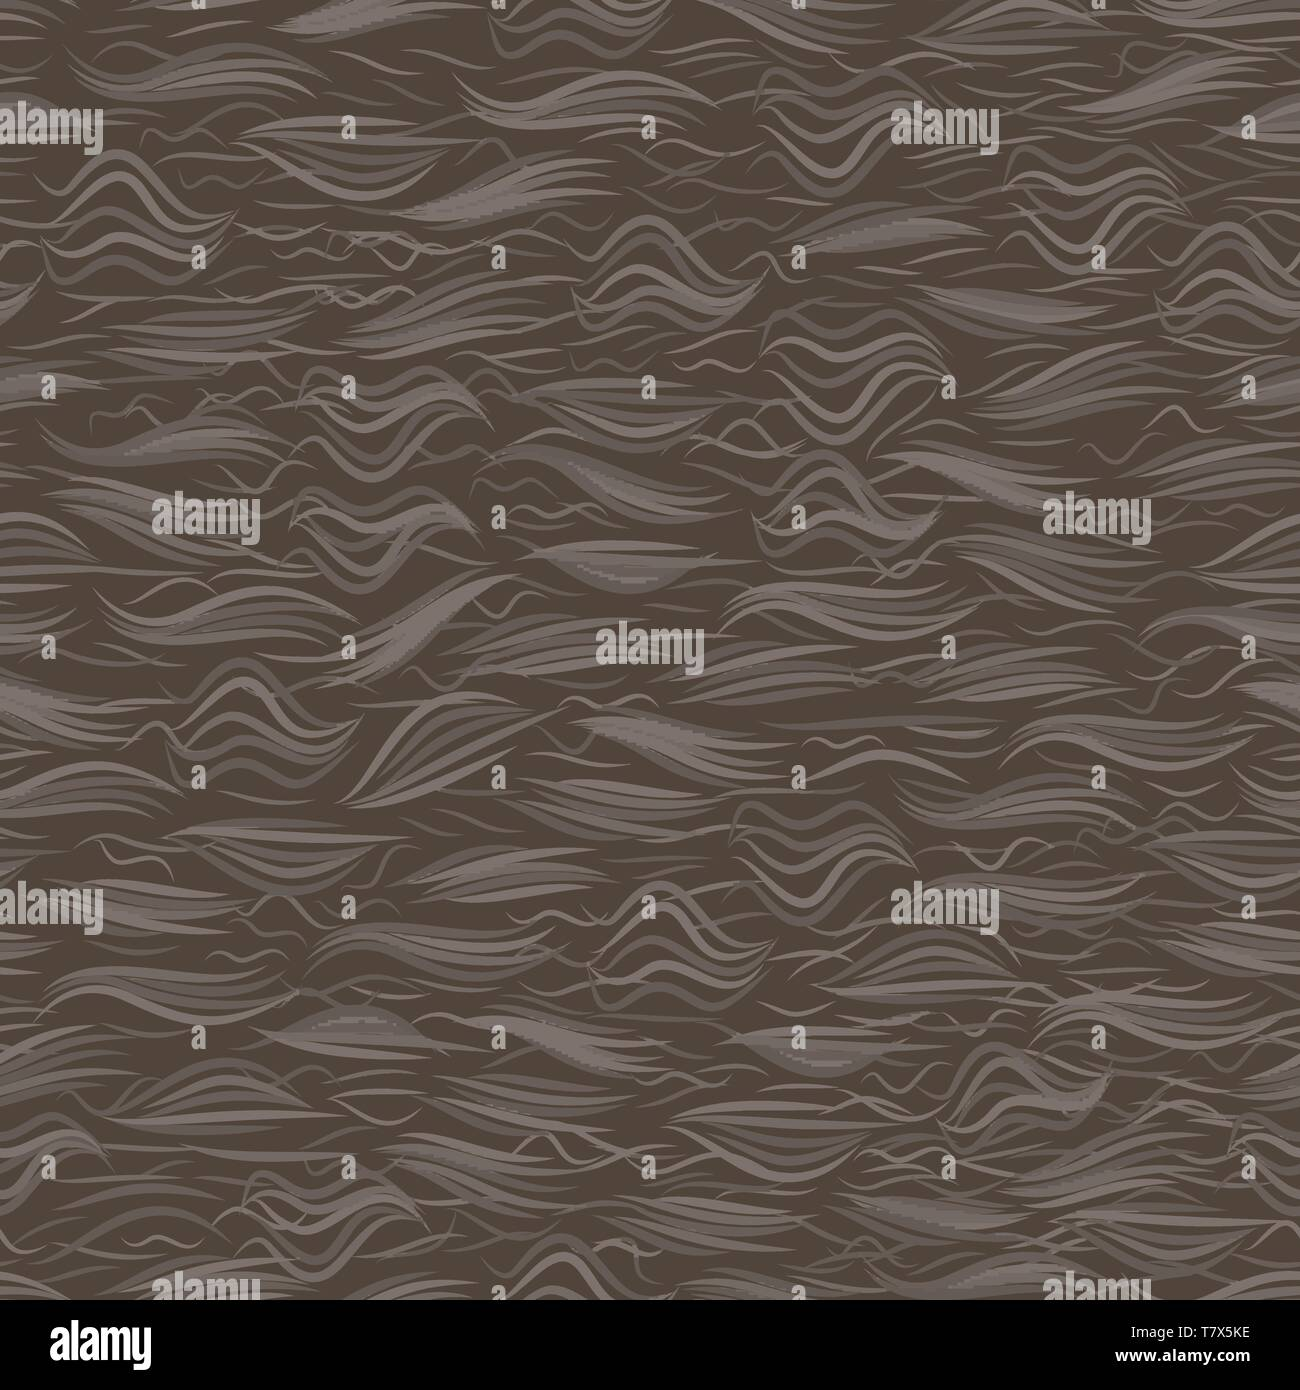 The texture of the brown fur. Seamless pattern background. Vector illustration. - Stock Vector